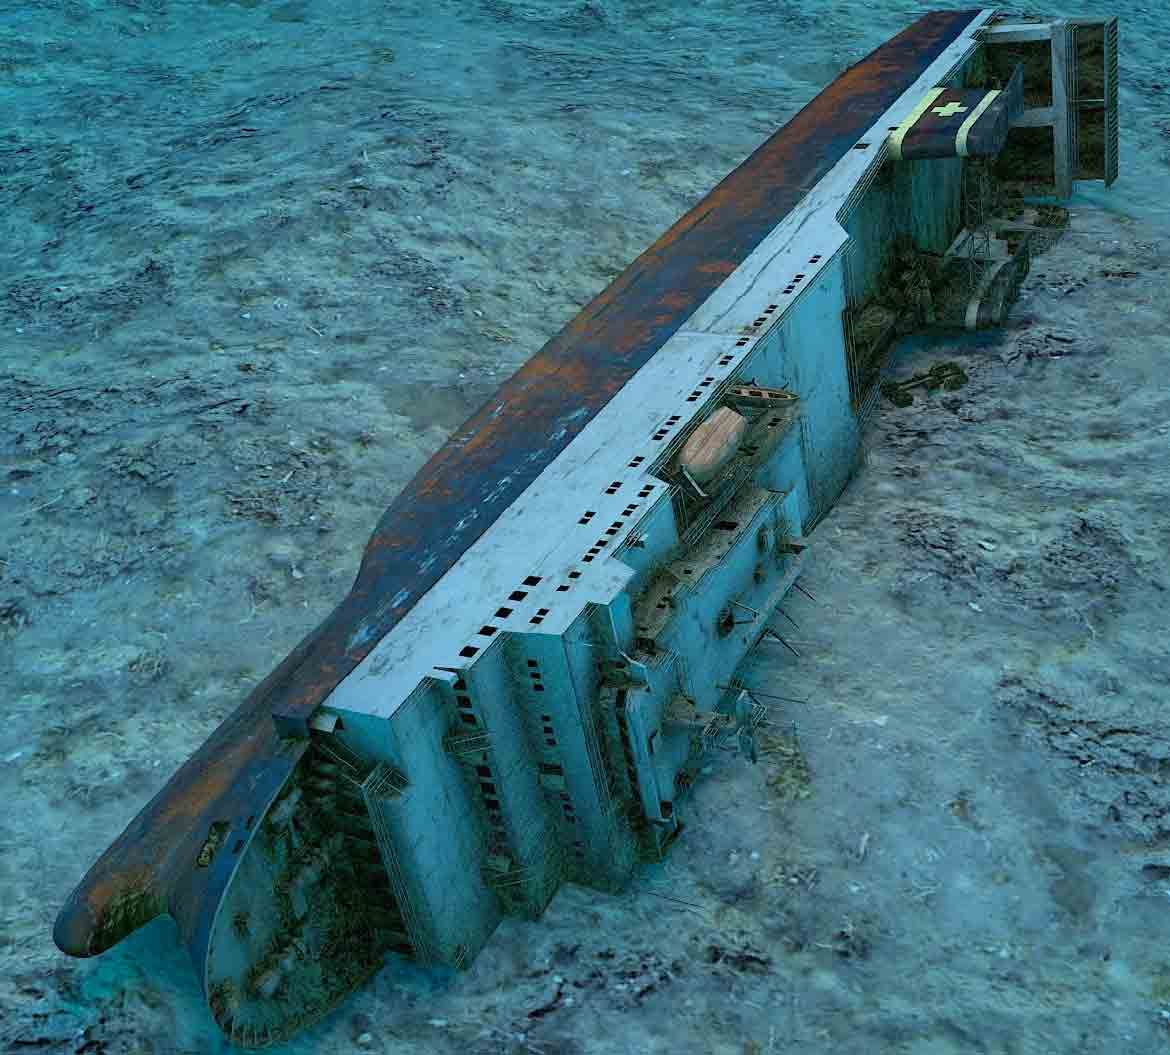 Dive the Zenobia wreck in Cyprus with Poseidon